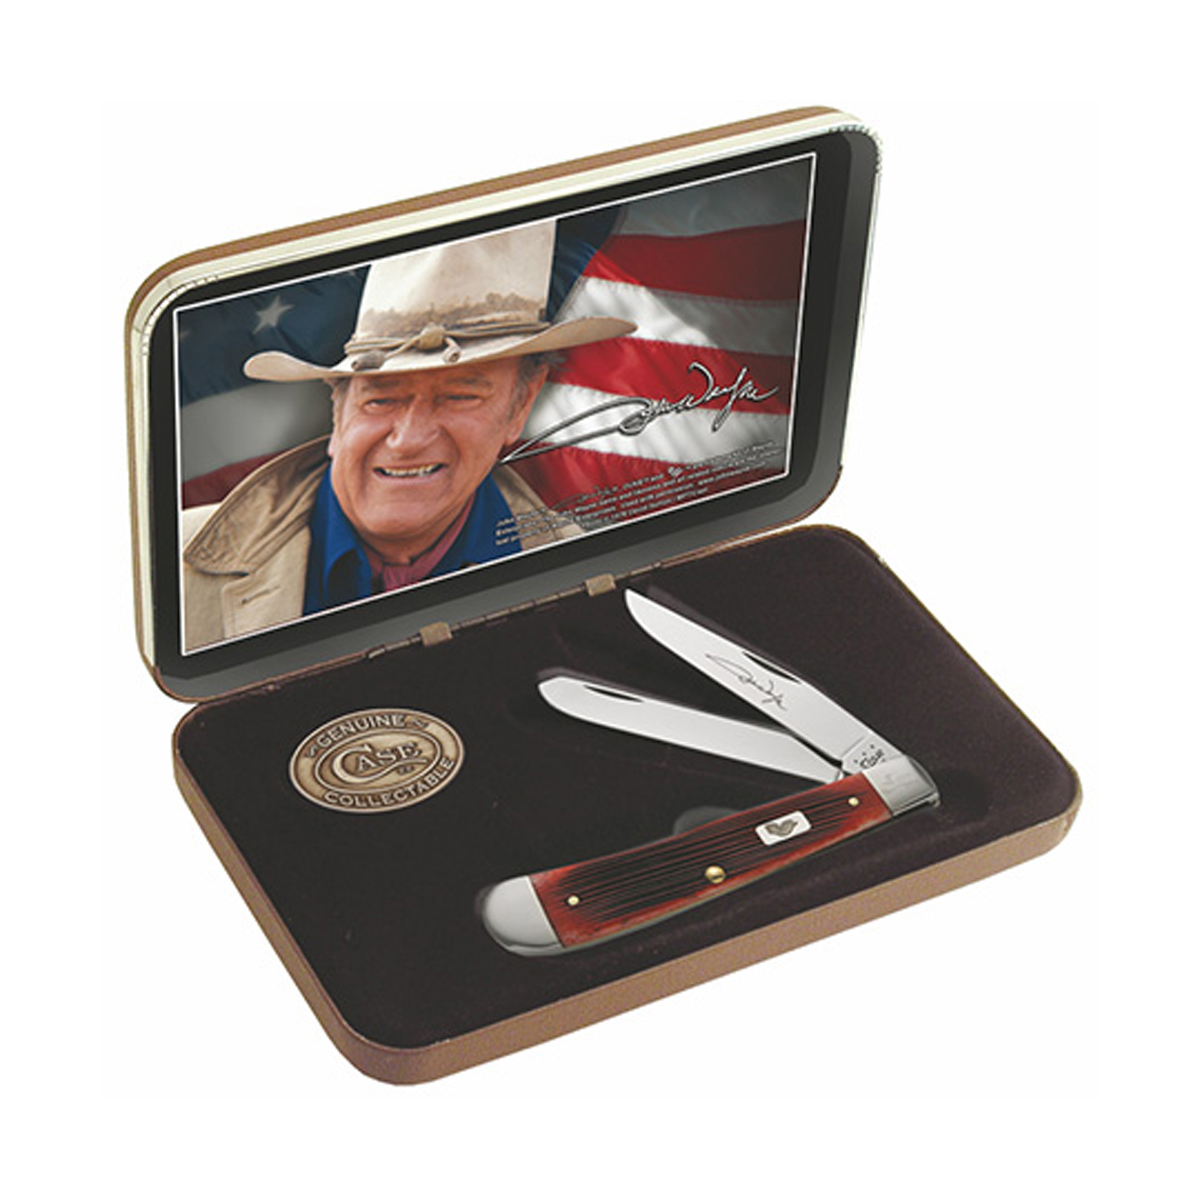 Case John Wayne 7444 Dark Red Bone Handle Gift Set Barnboard Jig Trapper 6254 SS